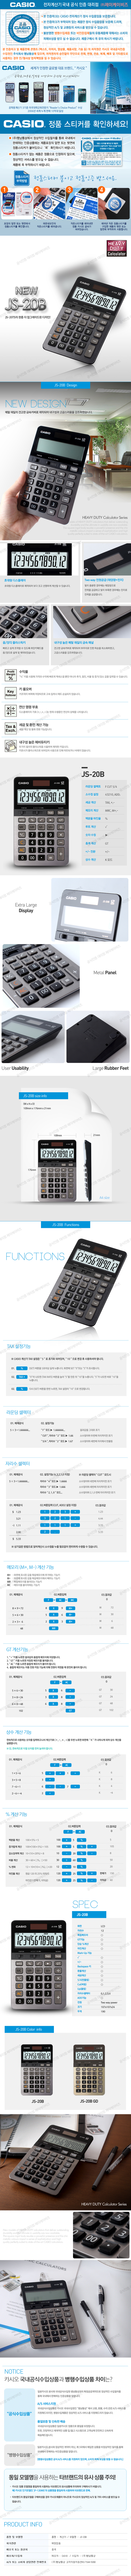 Casio Calculator Js 20b 40b Electronic Office 11street Colorful Ms 20uc Black Seller Information